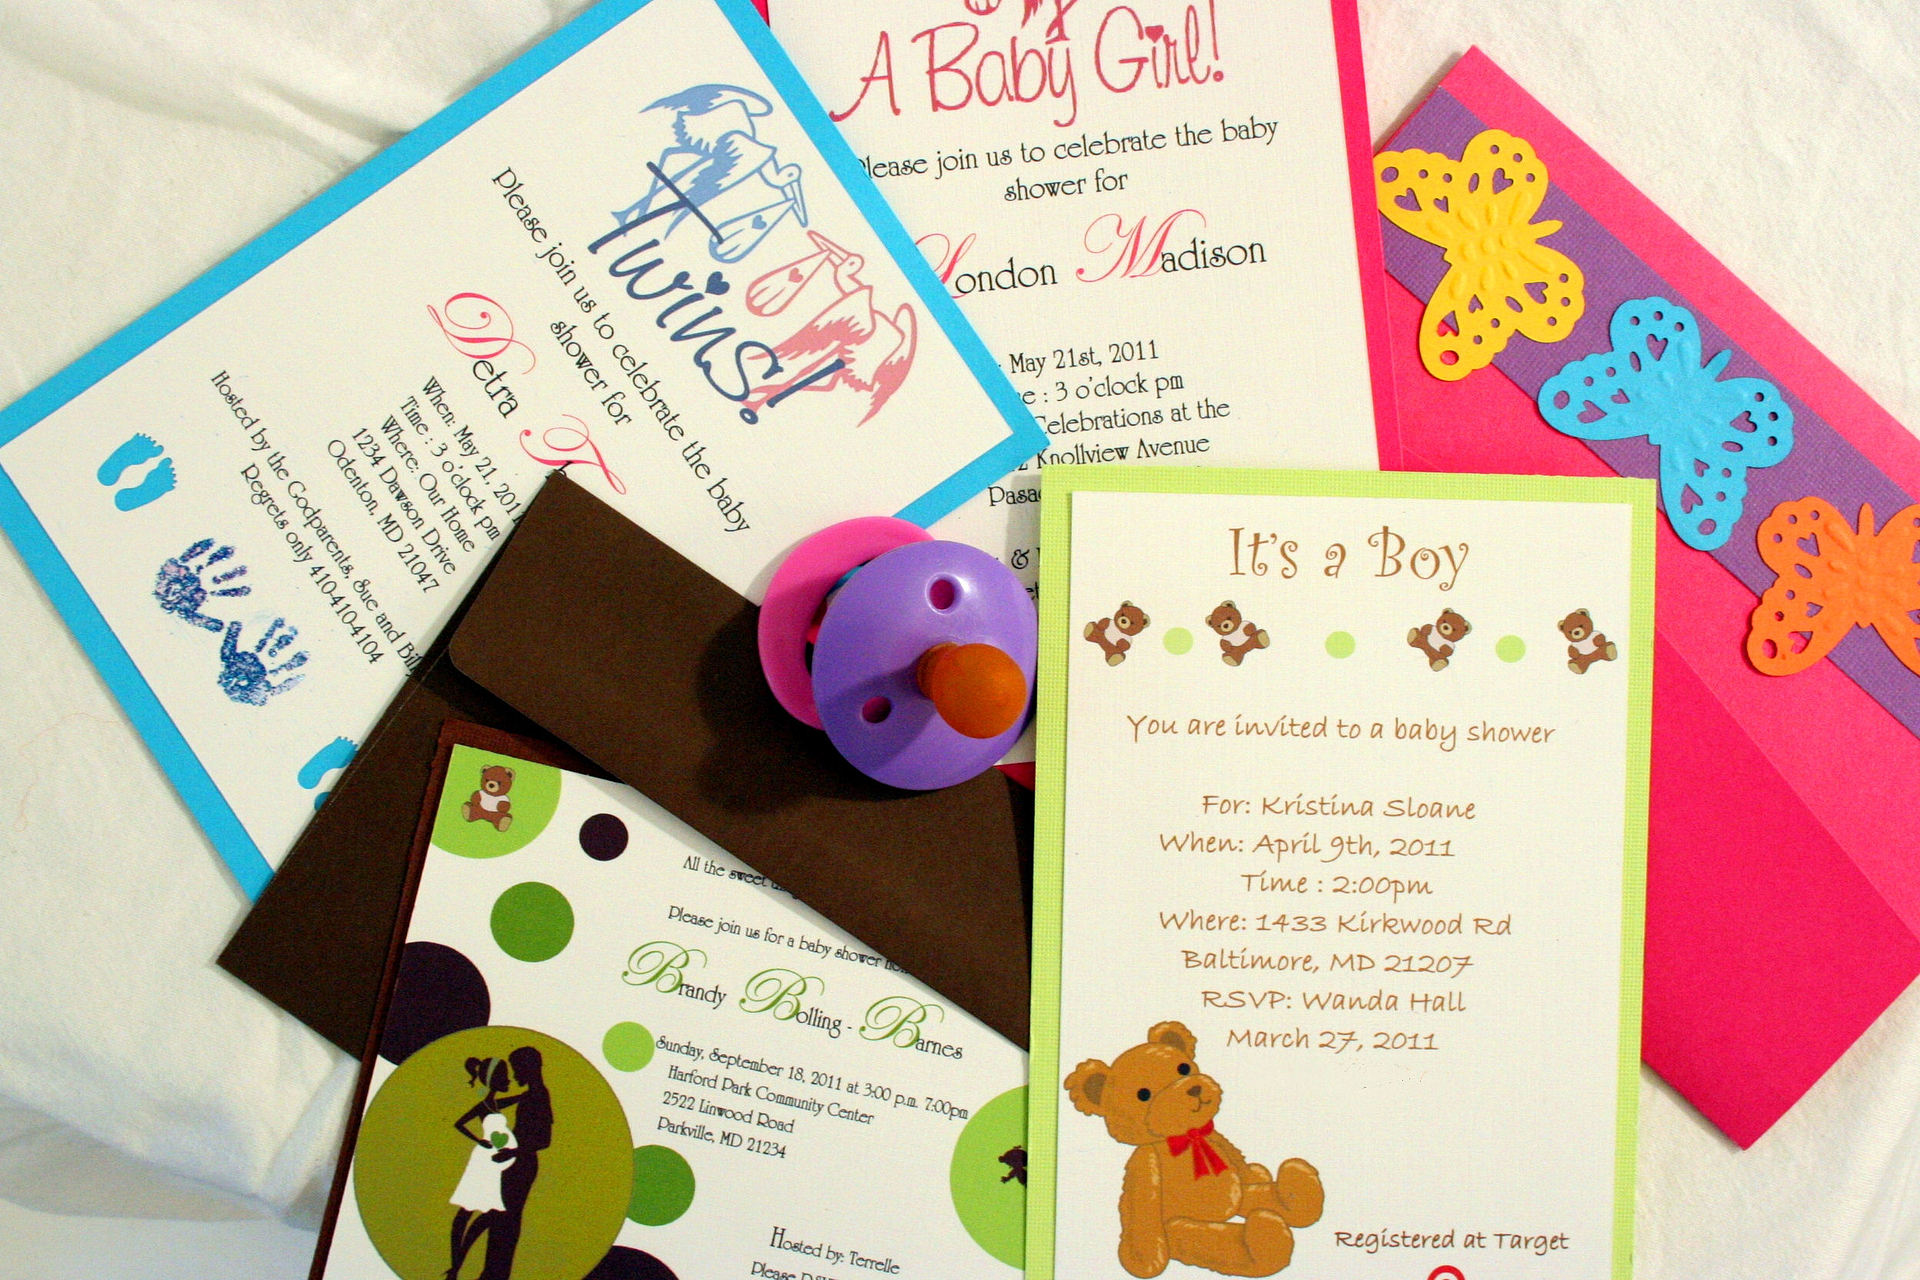 Baby shower invitaitons